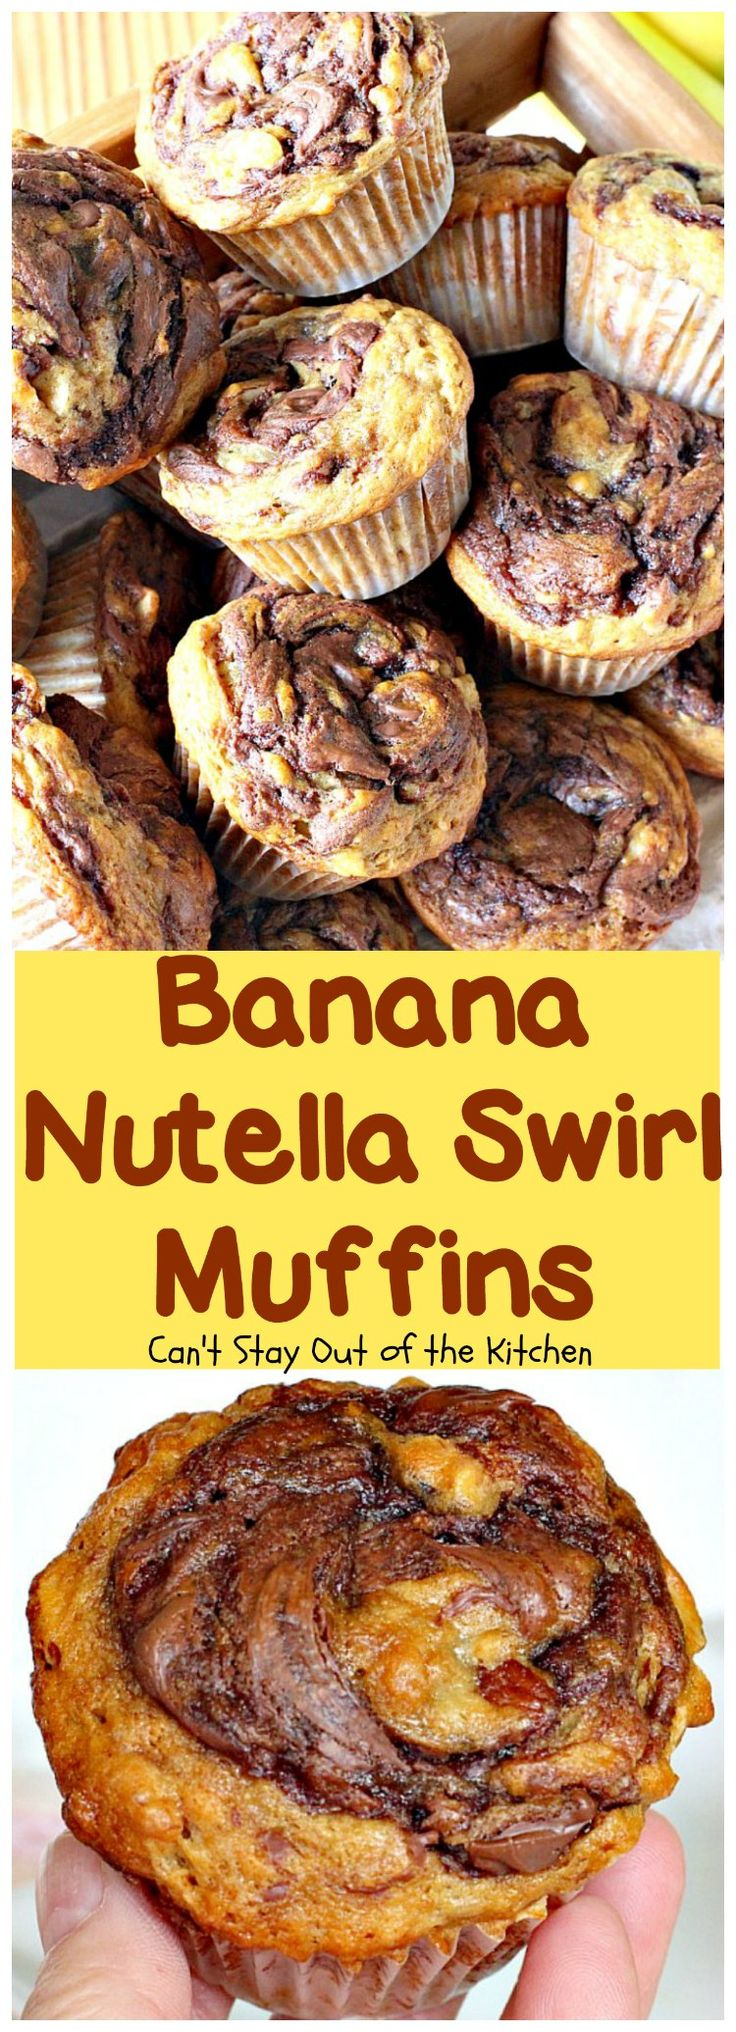 Banana Nutella Swirl Muffins | Can't Stay Out of the Kitchen | these #muffins are divine! You won't be able to stop eating them. Great for a #holiday #breakfast, too. #bananas #almonds #nutella